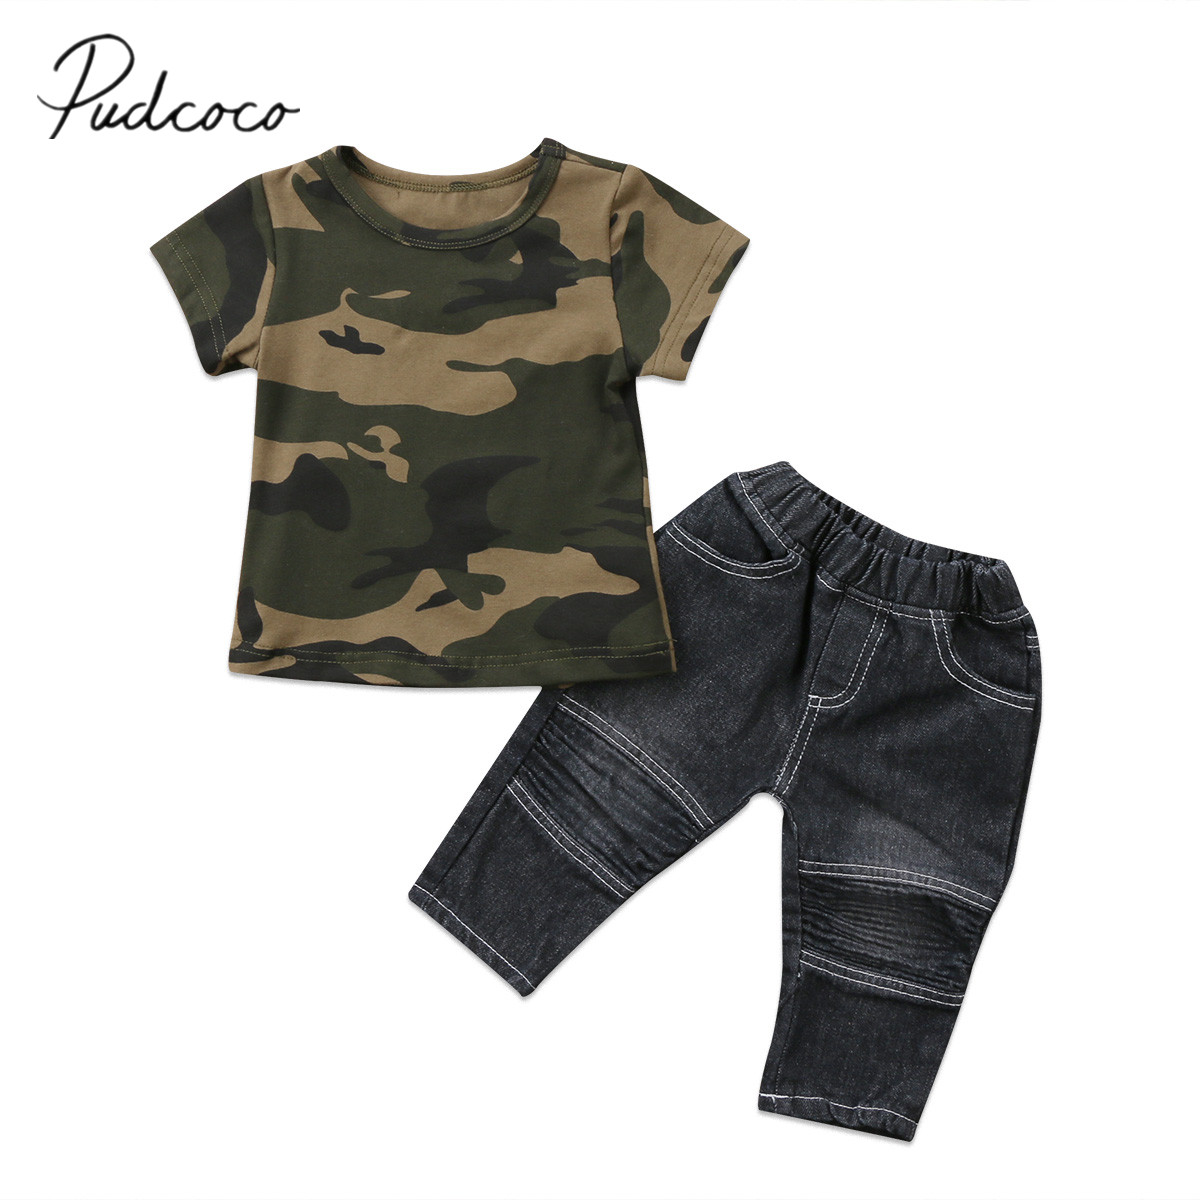 2017 Brand New Lovely Toddler Infant Child Kids Baby Boys Camo T-Shirt Tops Denim Pants Cotton 2Pcs Outfits Clothes Set 6M-5T 2pcs toddler kids baby boy clothes sets t shirt tops short sleeve pants harem outfits set cotton clothing baby boys 1 6t